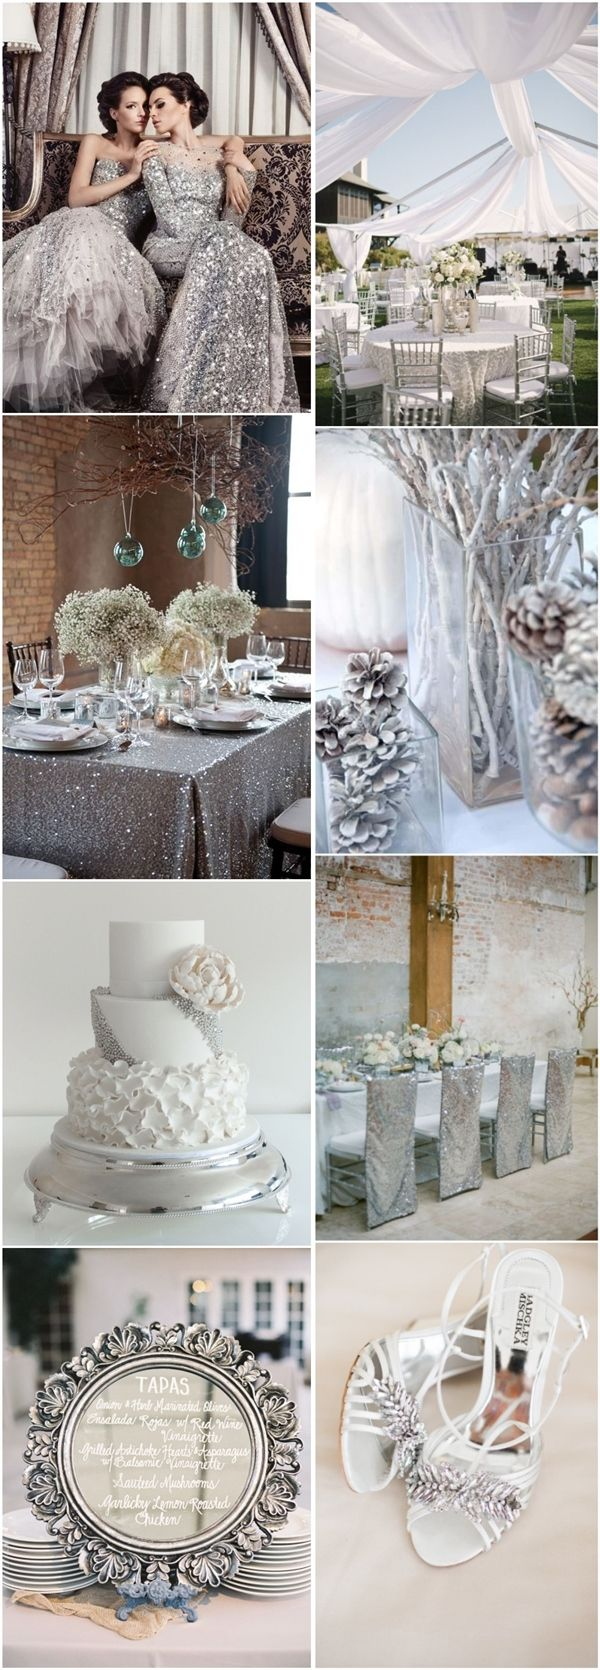 Silver Wedding Ideas - silver winter wedding color ideas